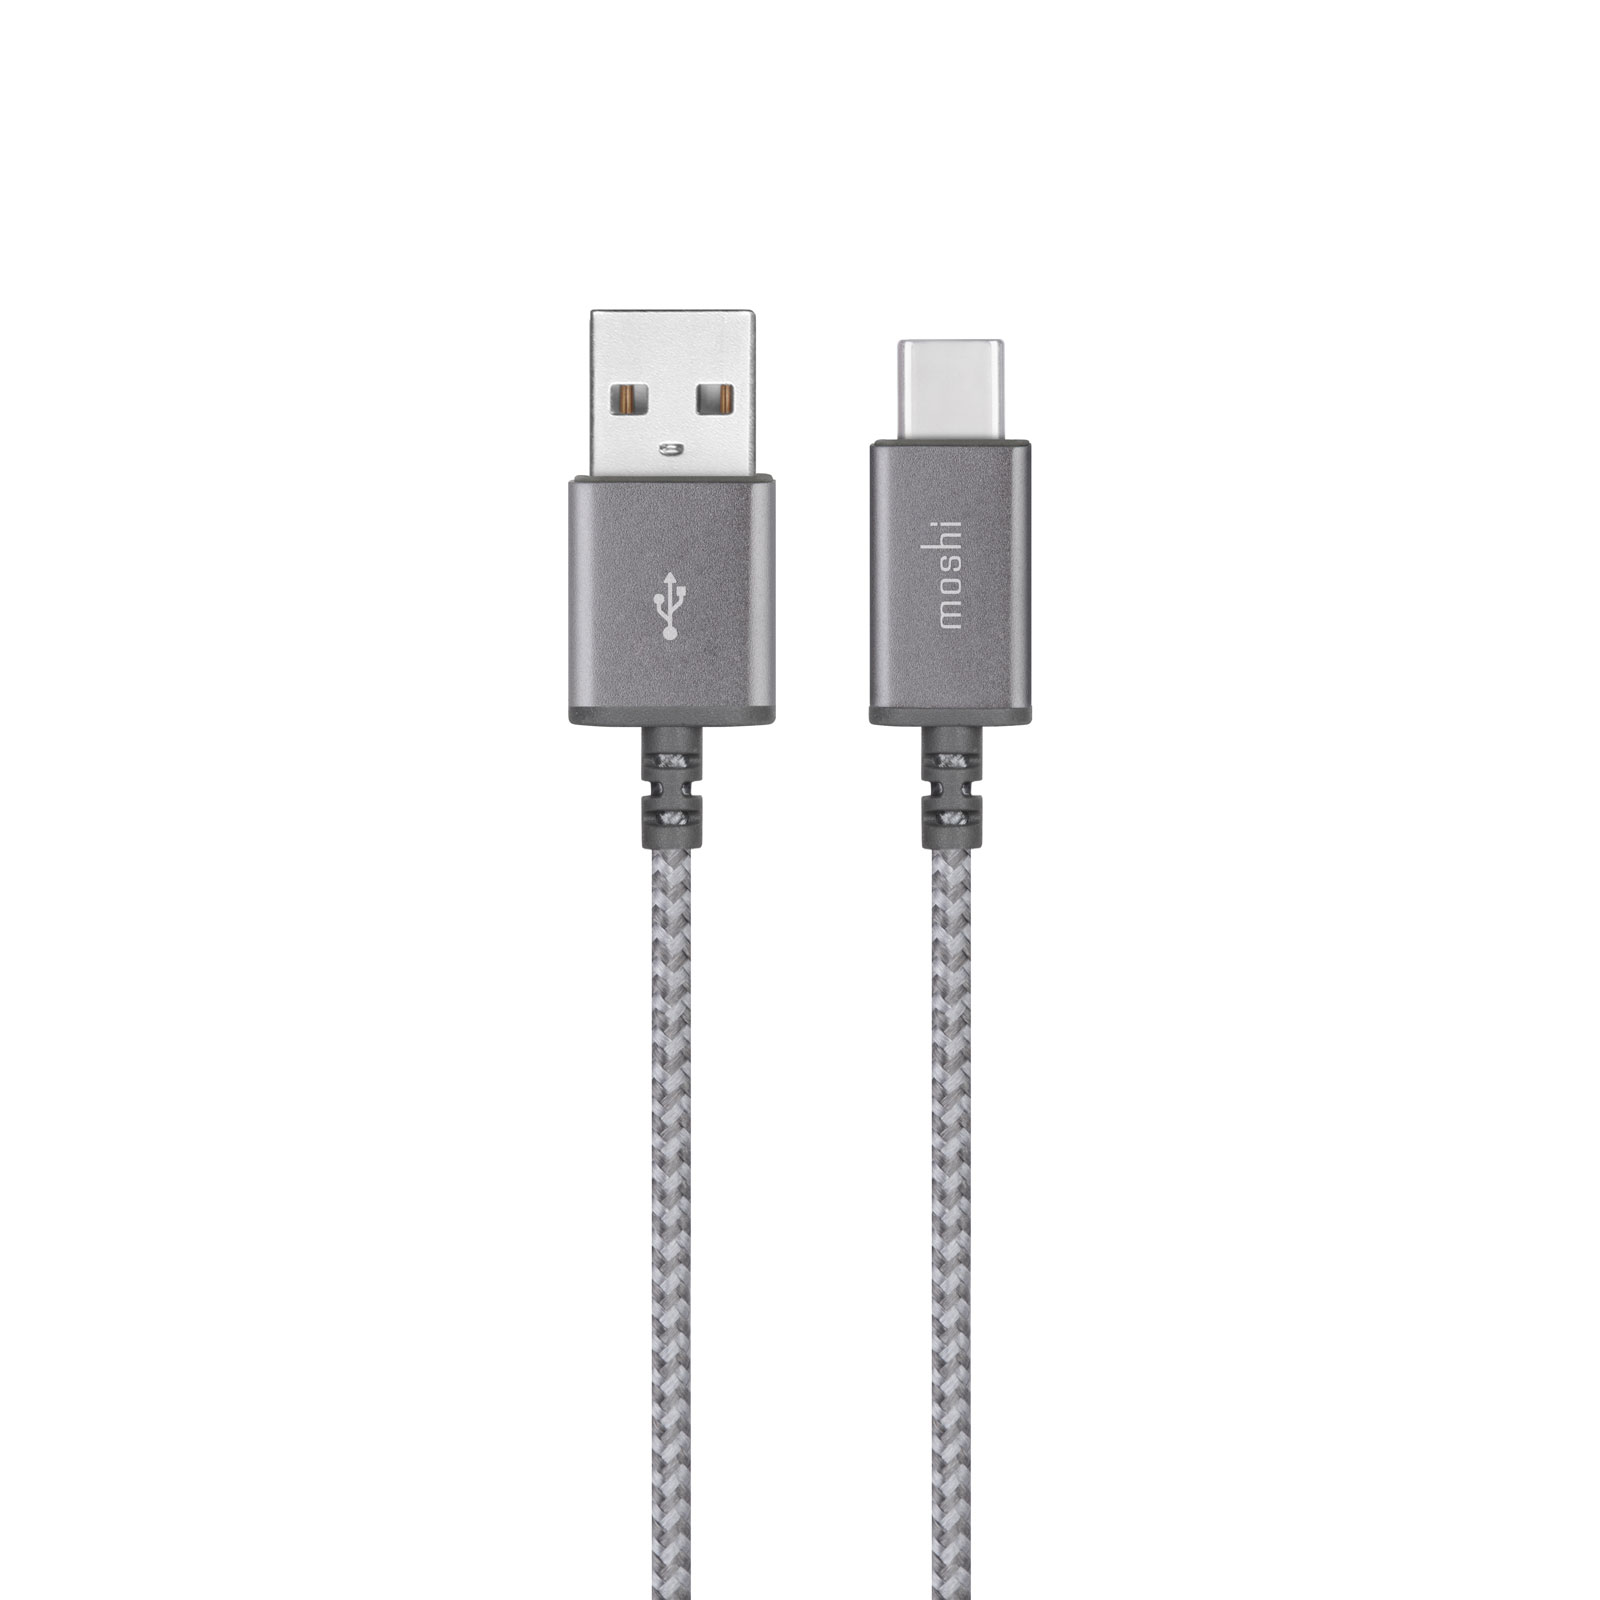 Integra™ USB-C to USB-A Charge Cable 5 ft (1.5 m)-2-thumbnail